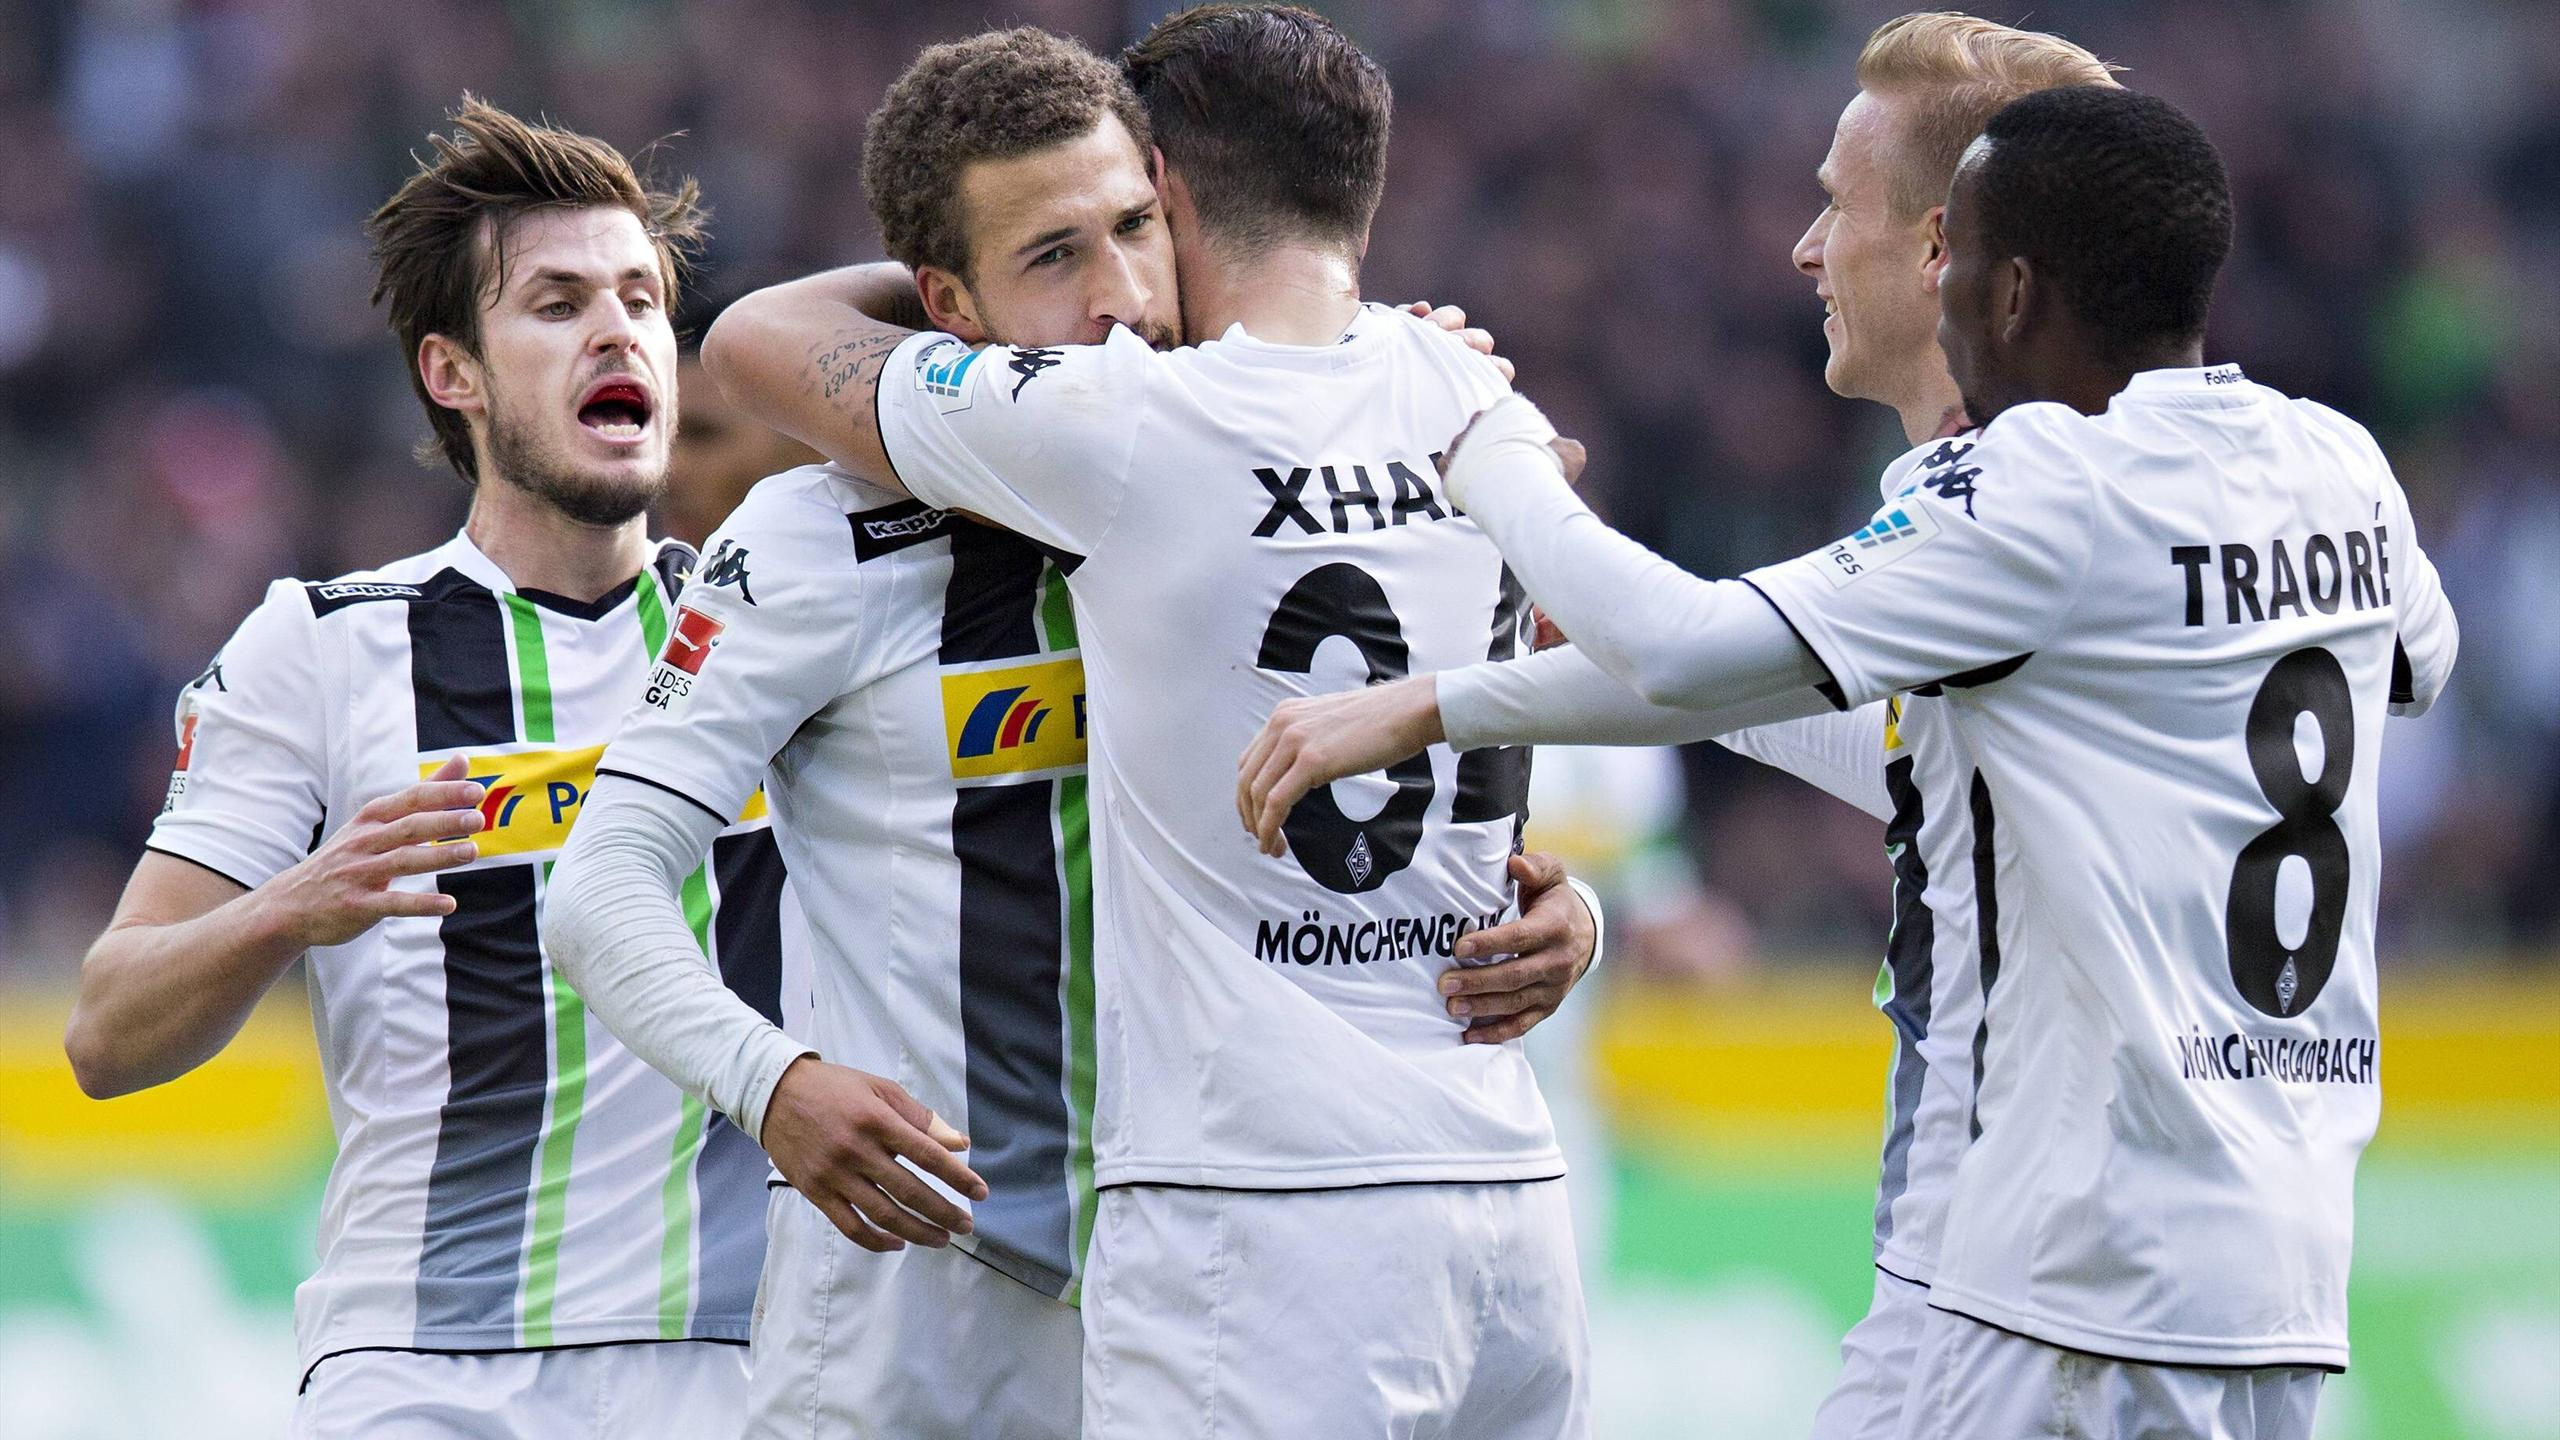 Video: Kickers Offenbach vs Borussia M gladbach